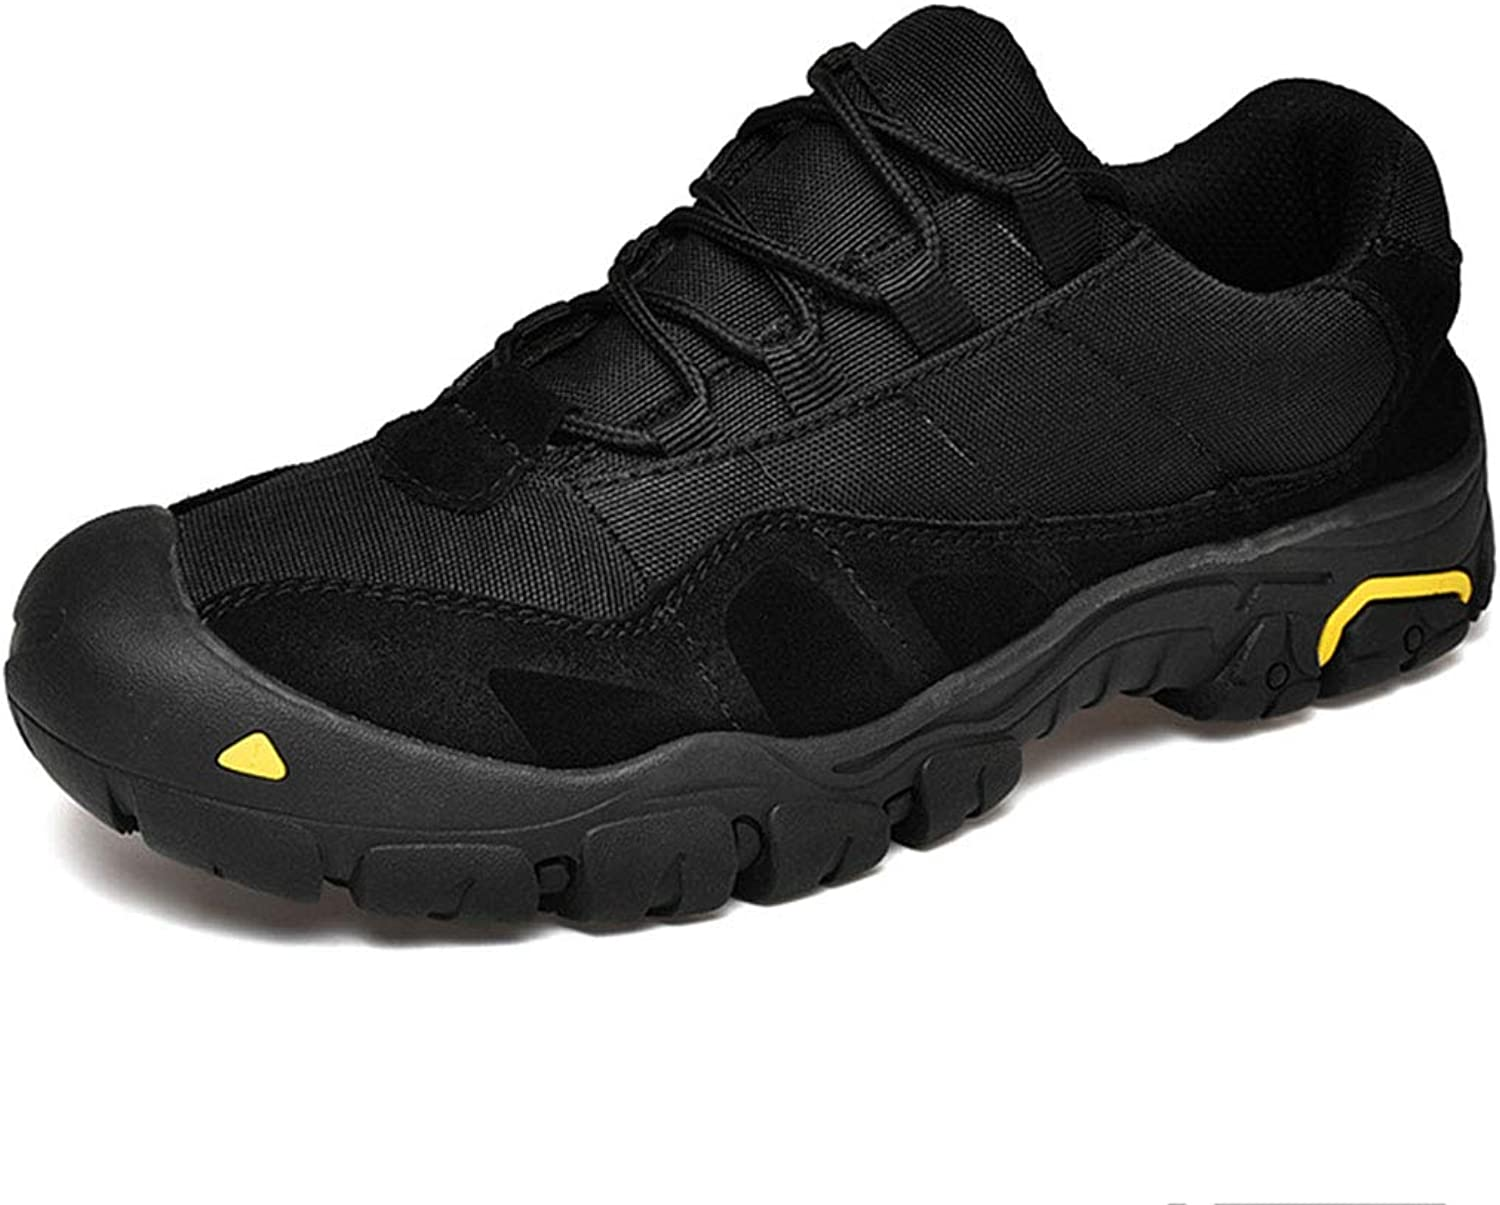 Men's Sports shoes Autumn Outdoor Hiking shoes Non-Slip Casual shoes